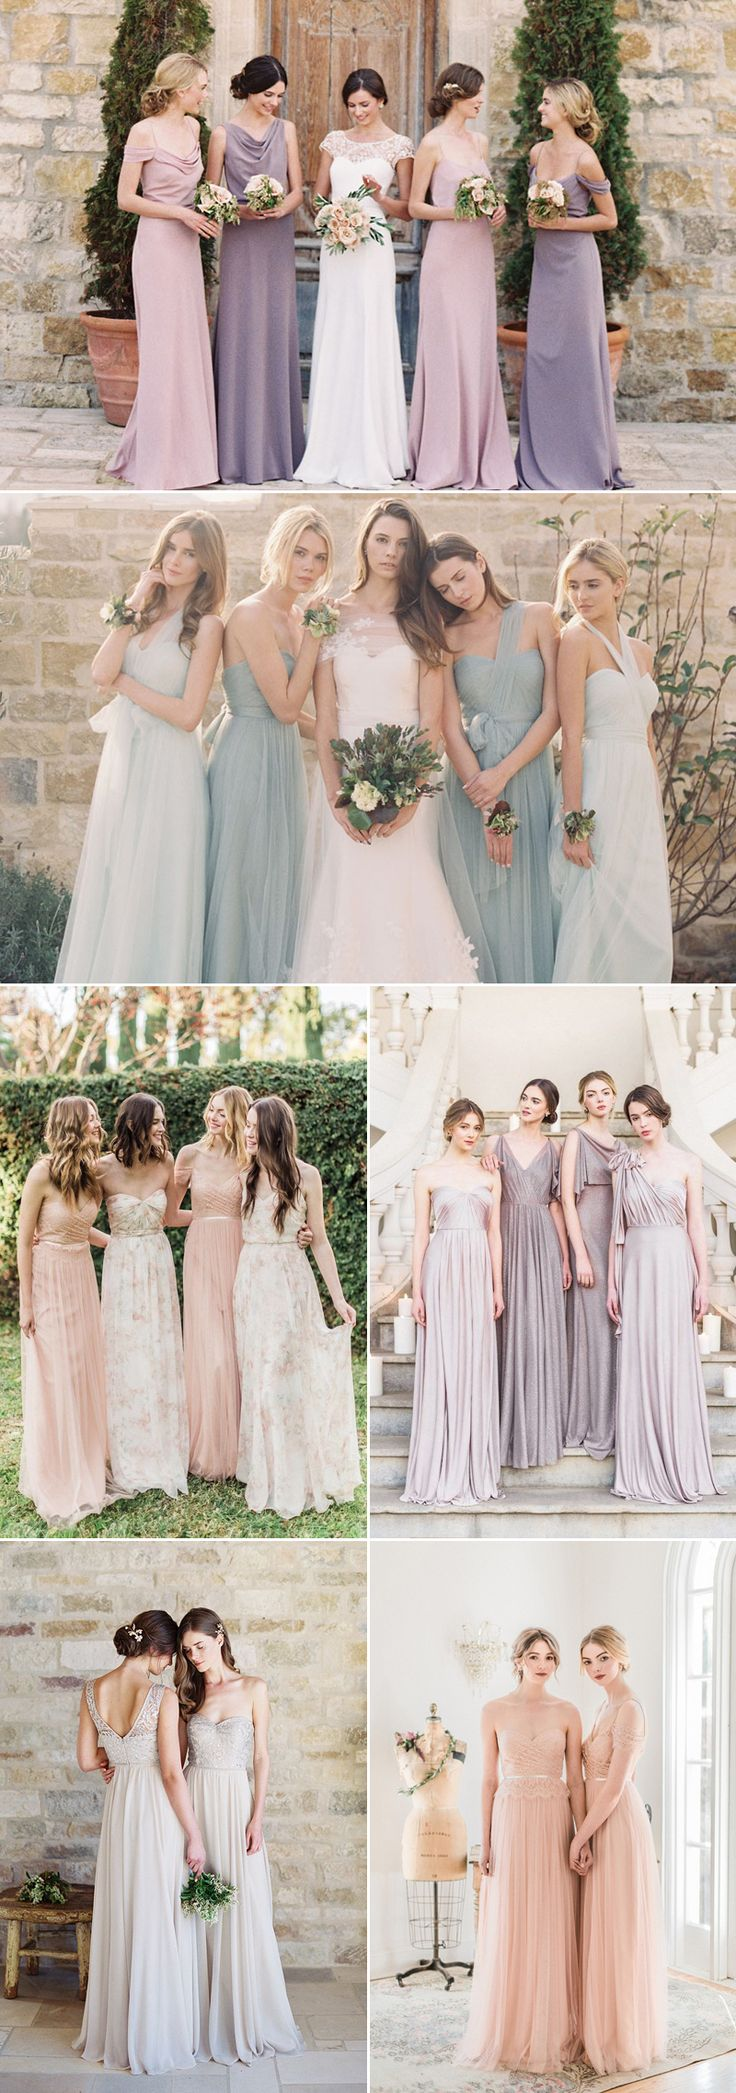 30 Dreamy Bridesmaid Dresses For Your Romantic Wedding - Jenny Yoo